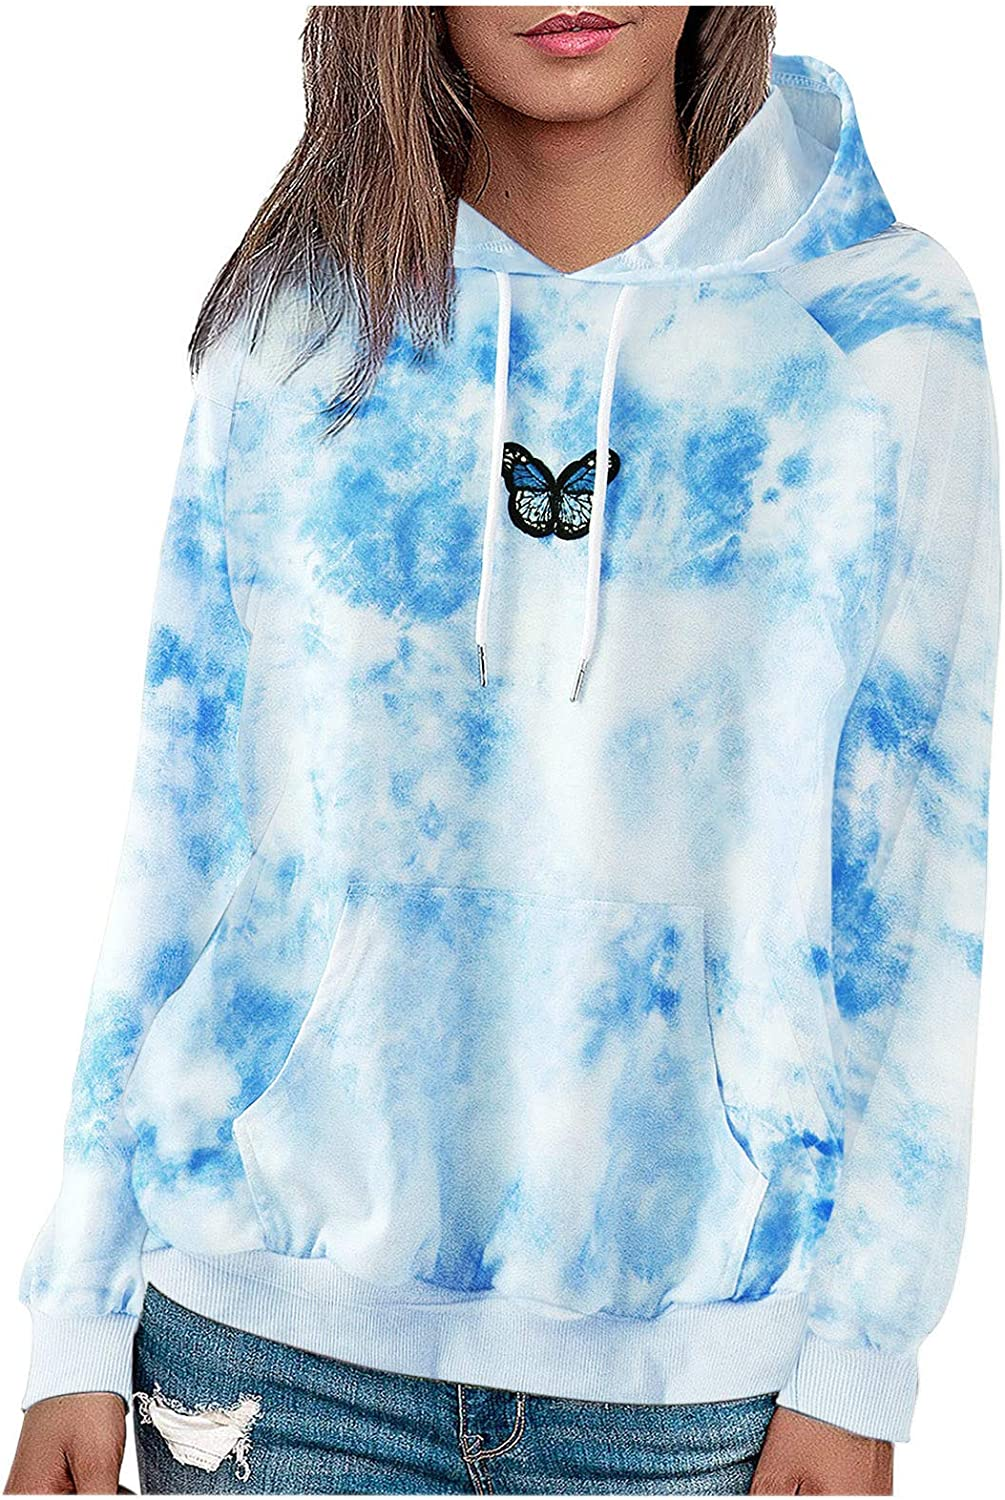 Toeava Womens Tie-Dye Butterfly Printing Long Sleeve Blouse Hooded Casual Sweater Drawstring Pullover Tops